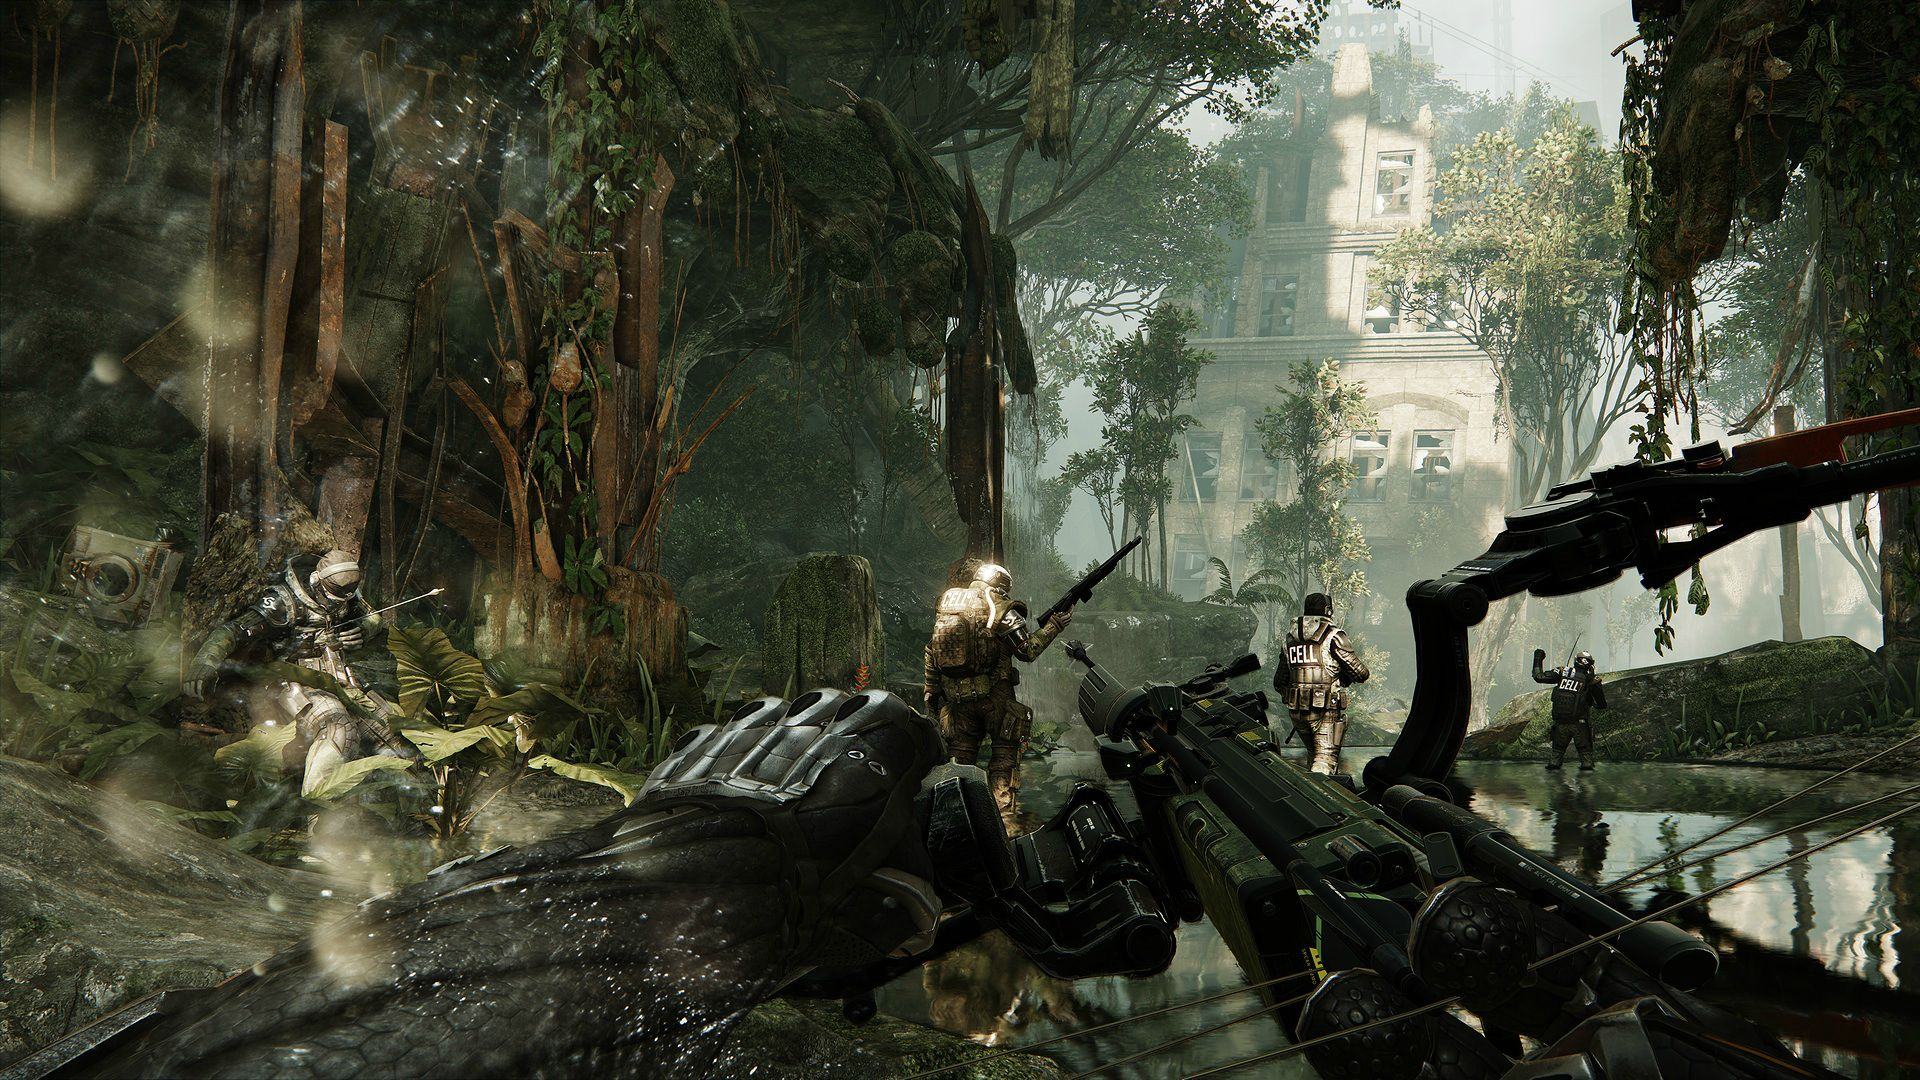 New Crysis 3 Screenshot Shows Jungle In New York